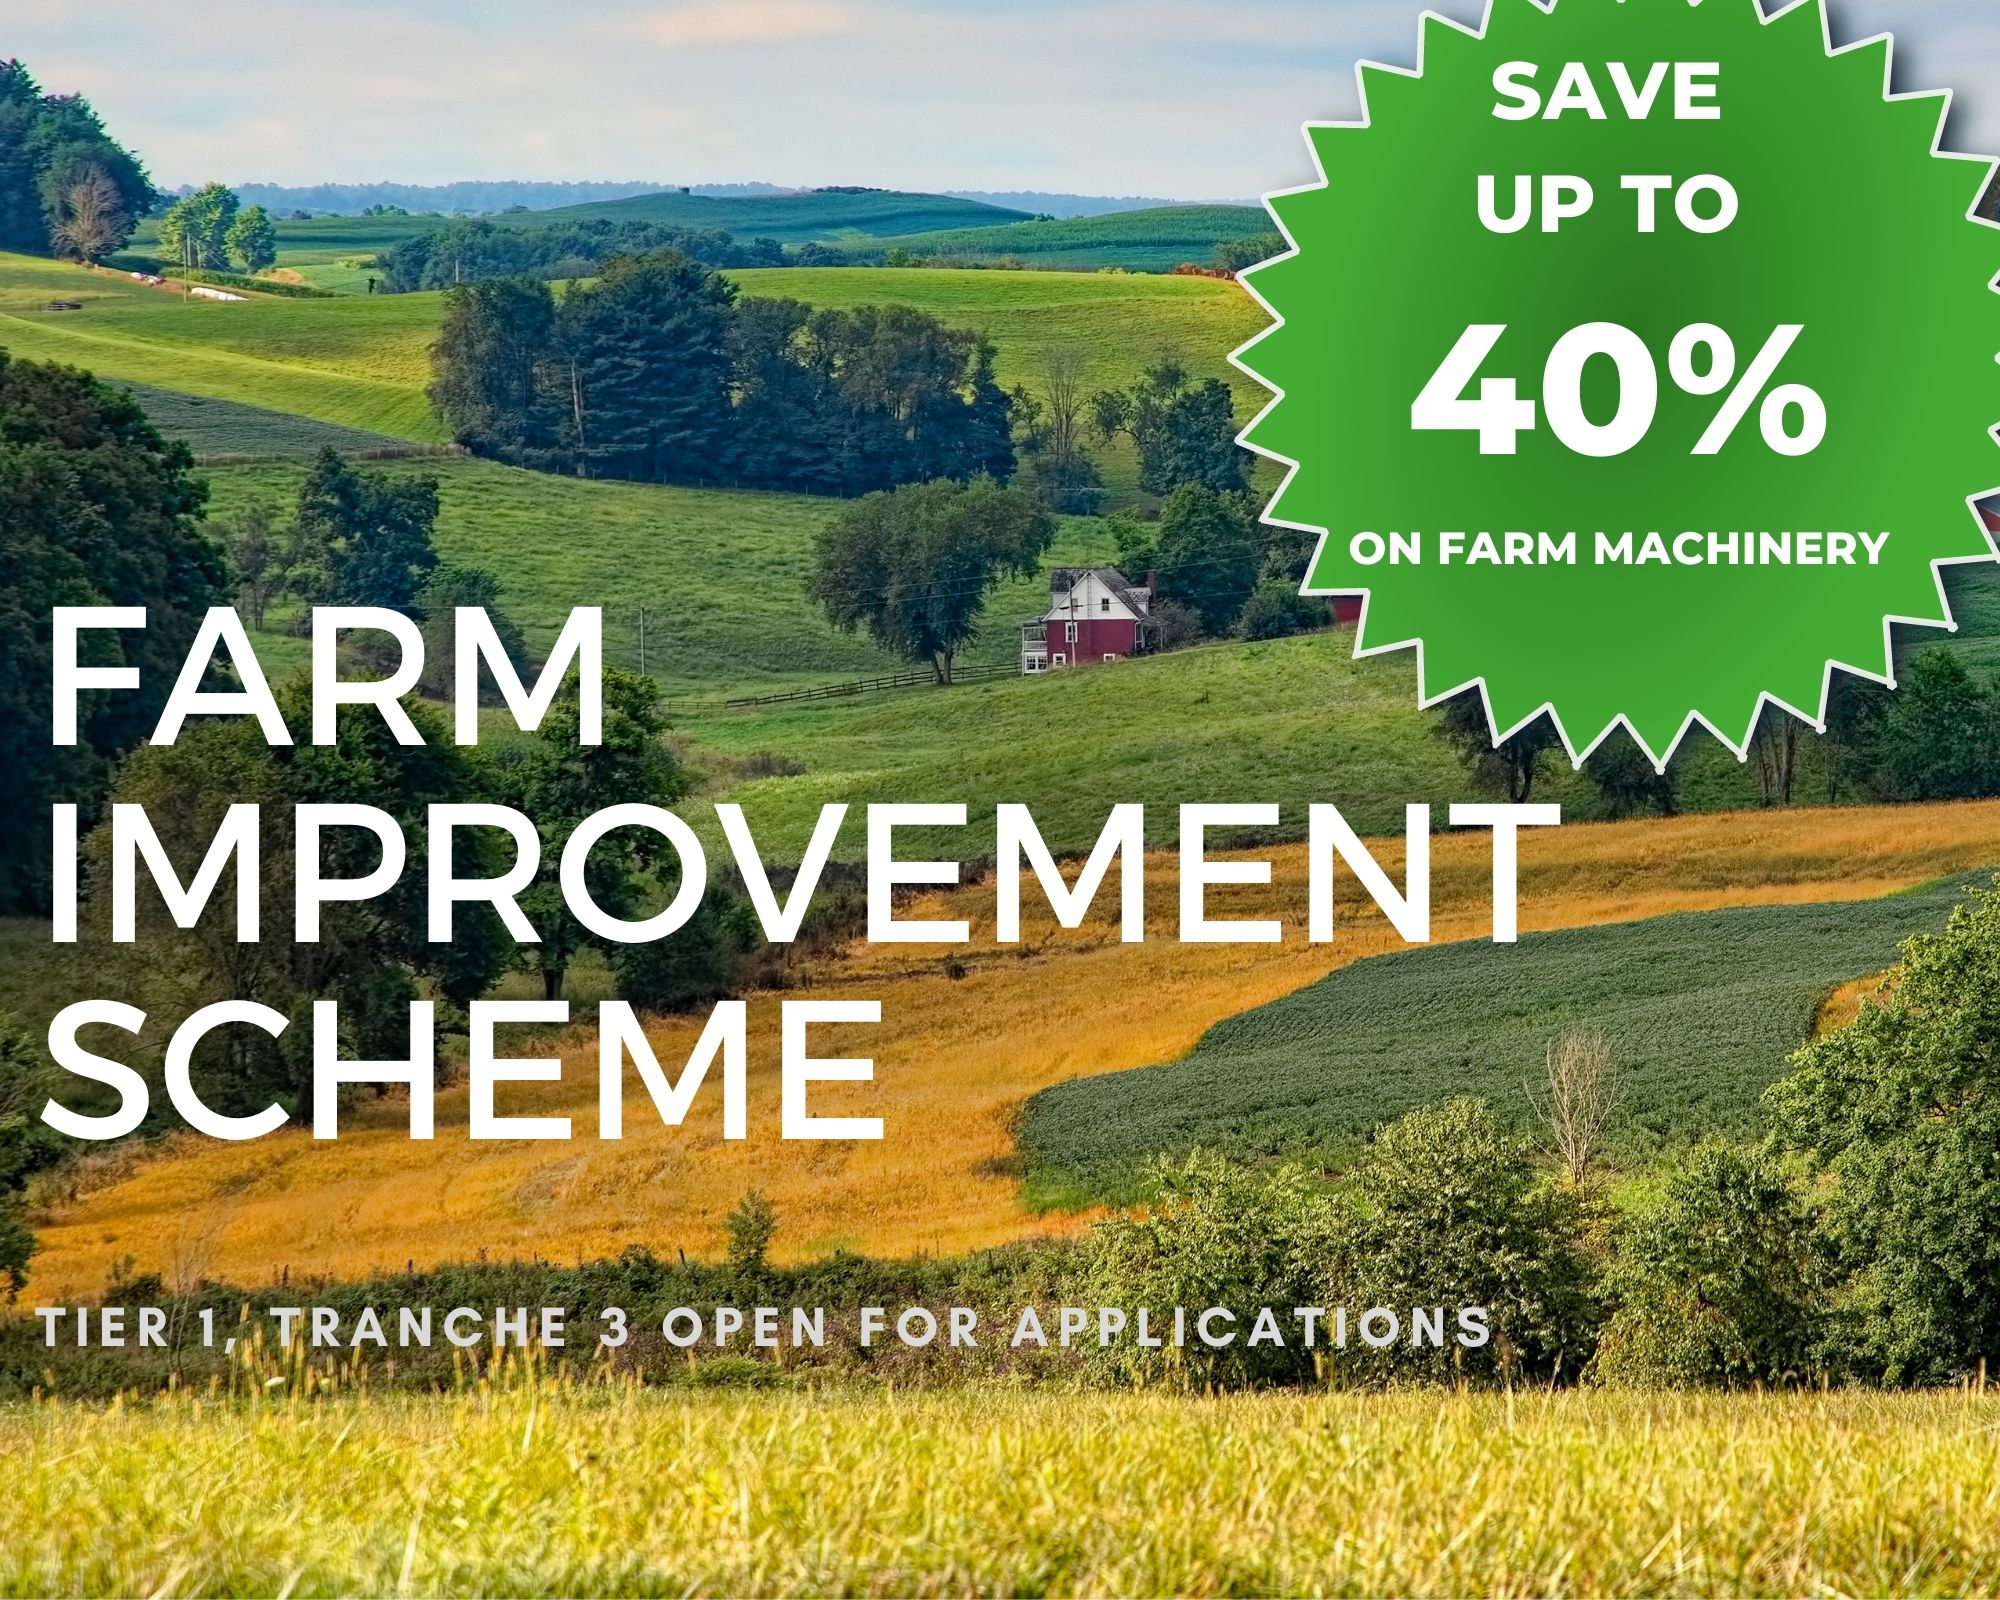 Save up to 40% on farm machinery with the Farm Improvement Scheme